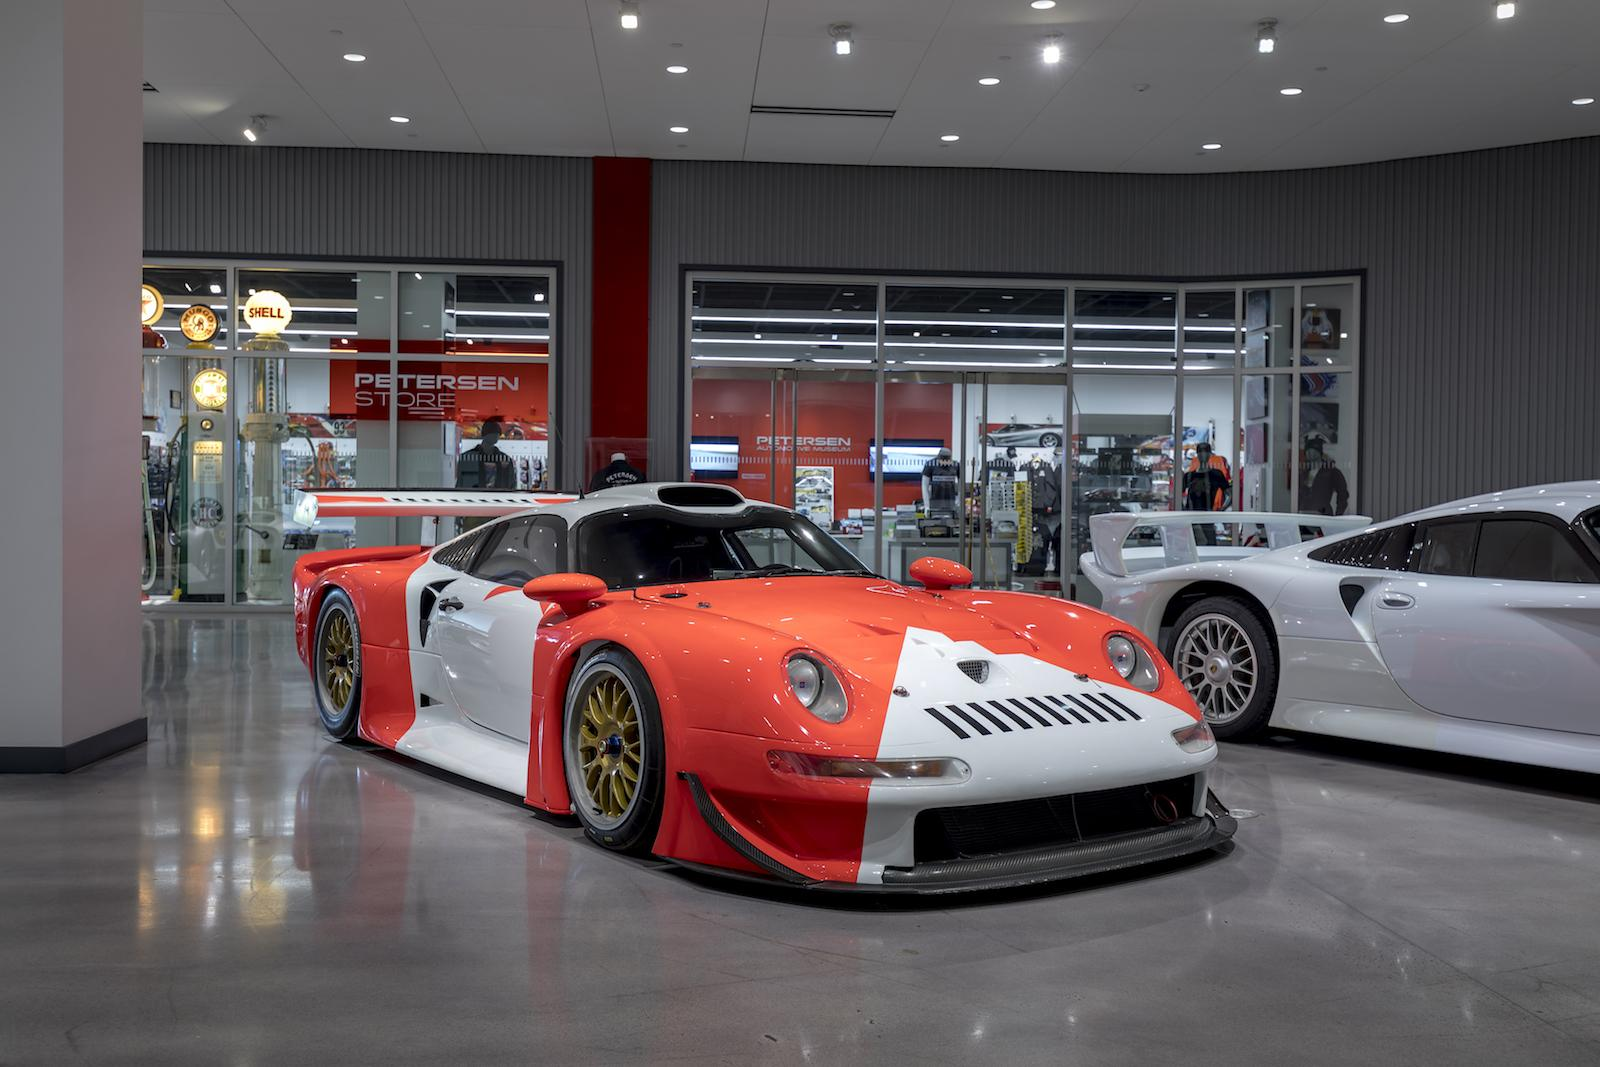 The Porsche GT1 Was The First Mid Engine 911 Derivative And The First To  Use An Entirely Water Cooled Engine. Based On The Factory Backed GT1s That  Took 2nd ...